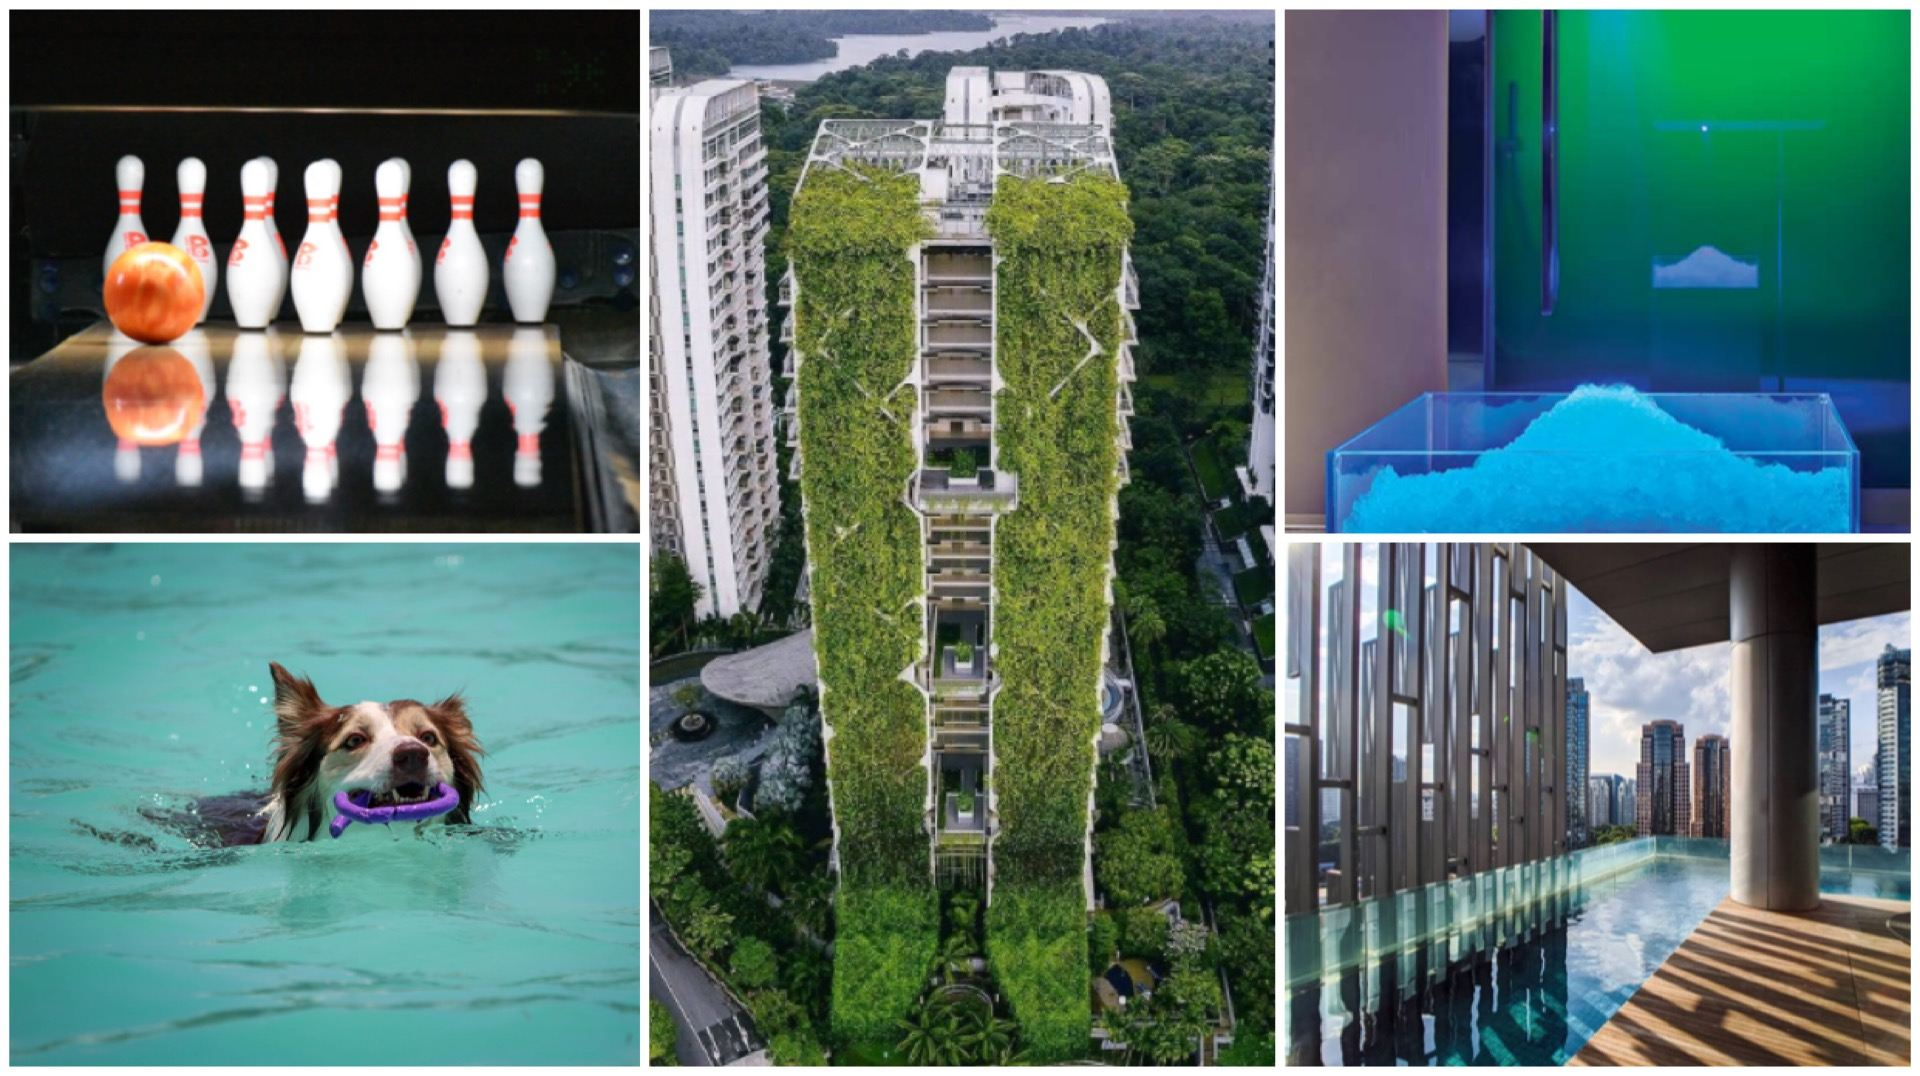 Singapore Condos With Unusual Facilities: Pet Pool, Boxing Ring, Bowling Alley